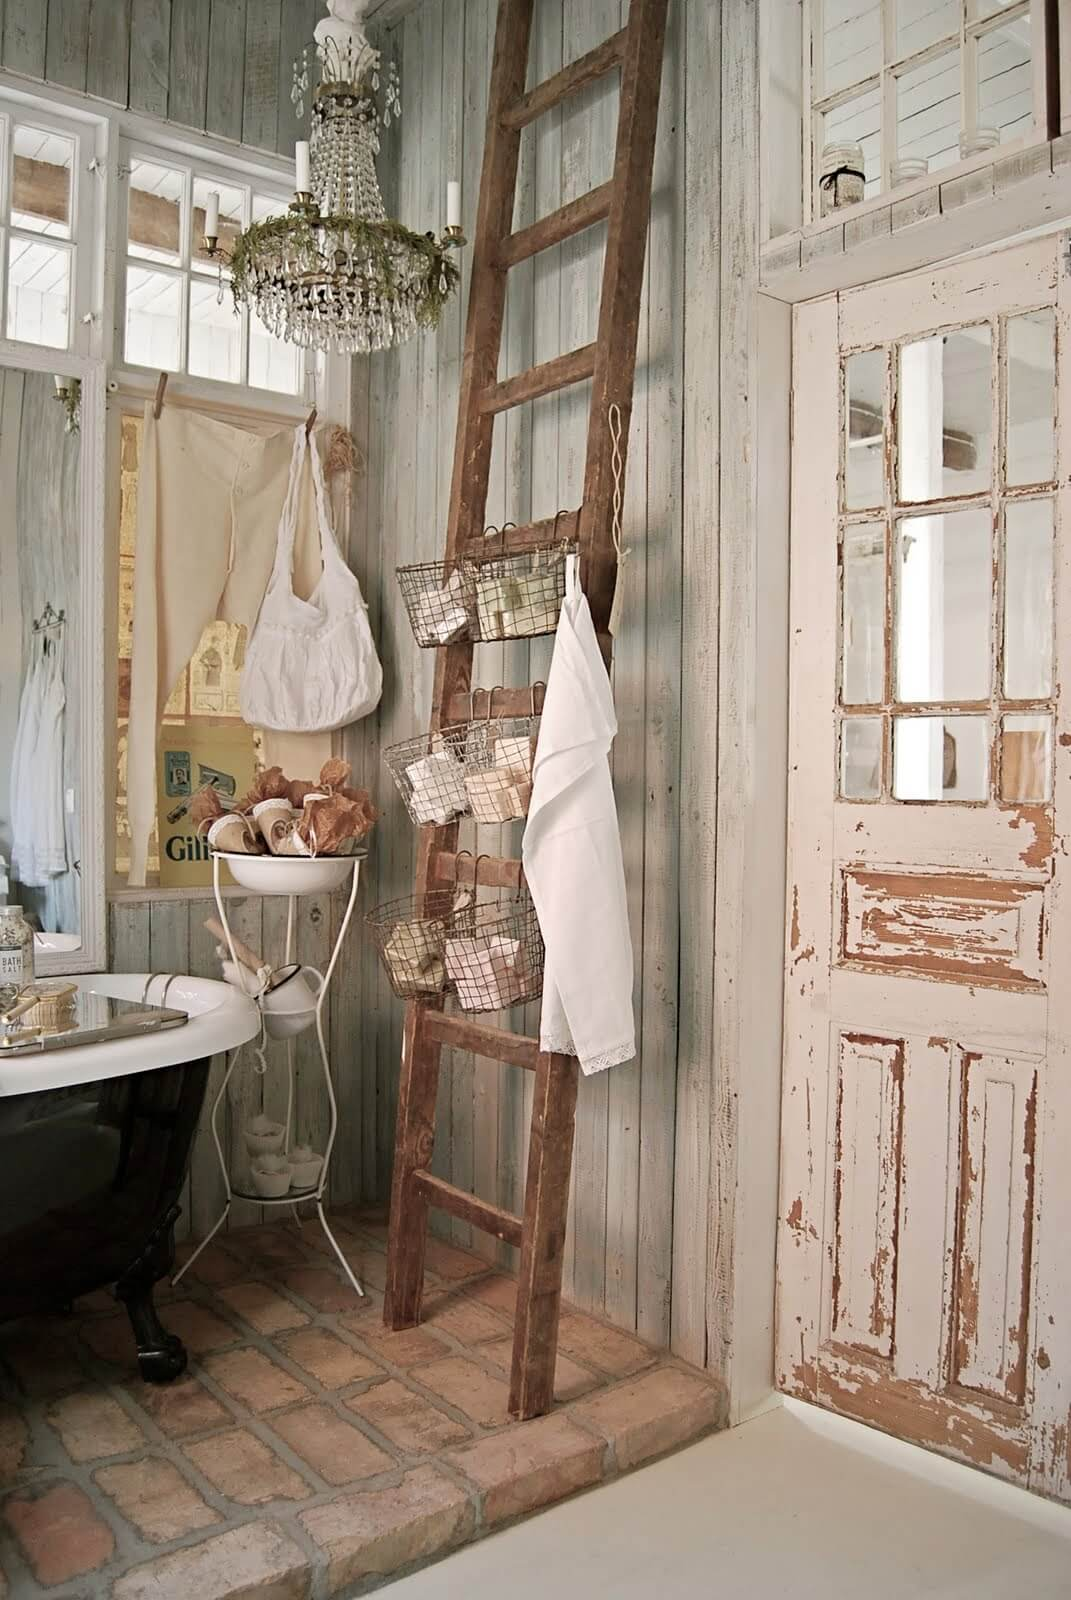 Wood Ladder Basket Bathroom Storage